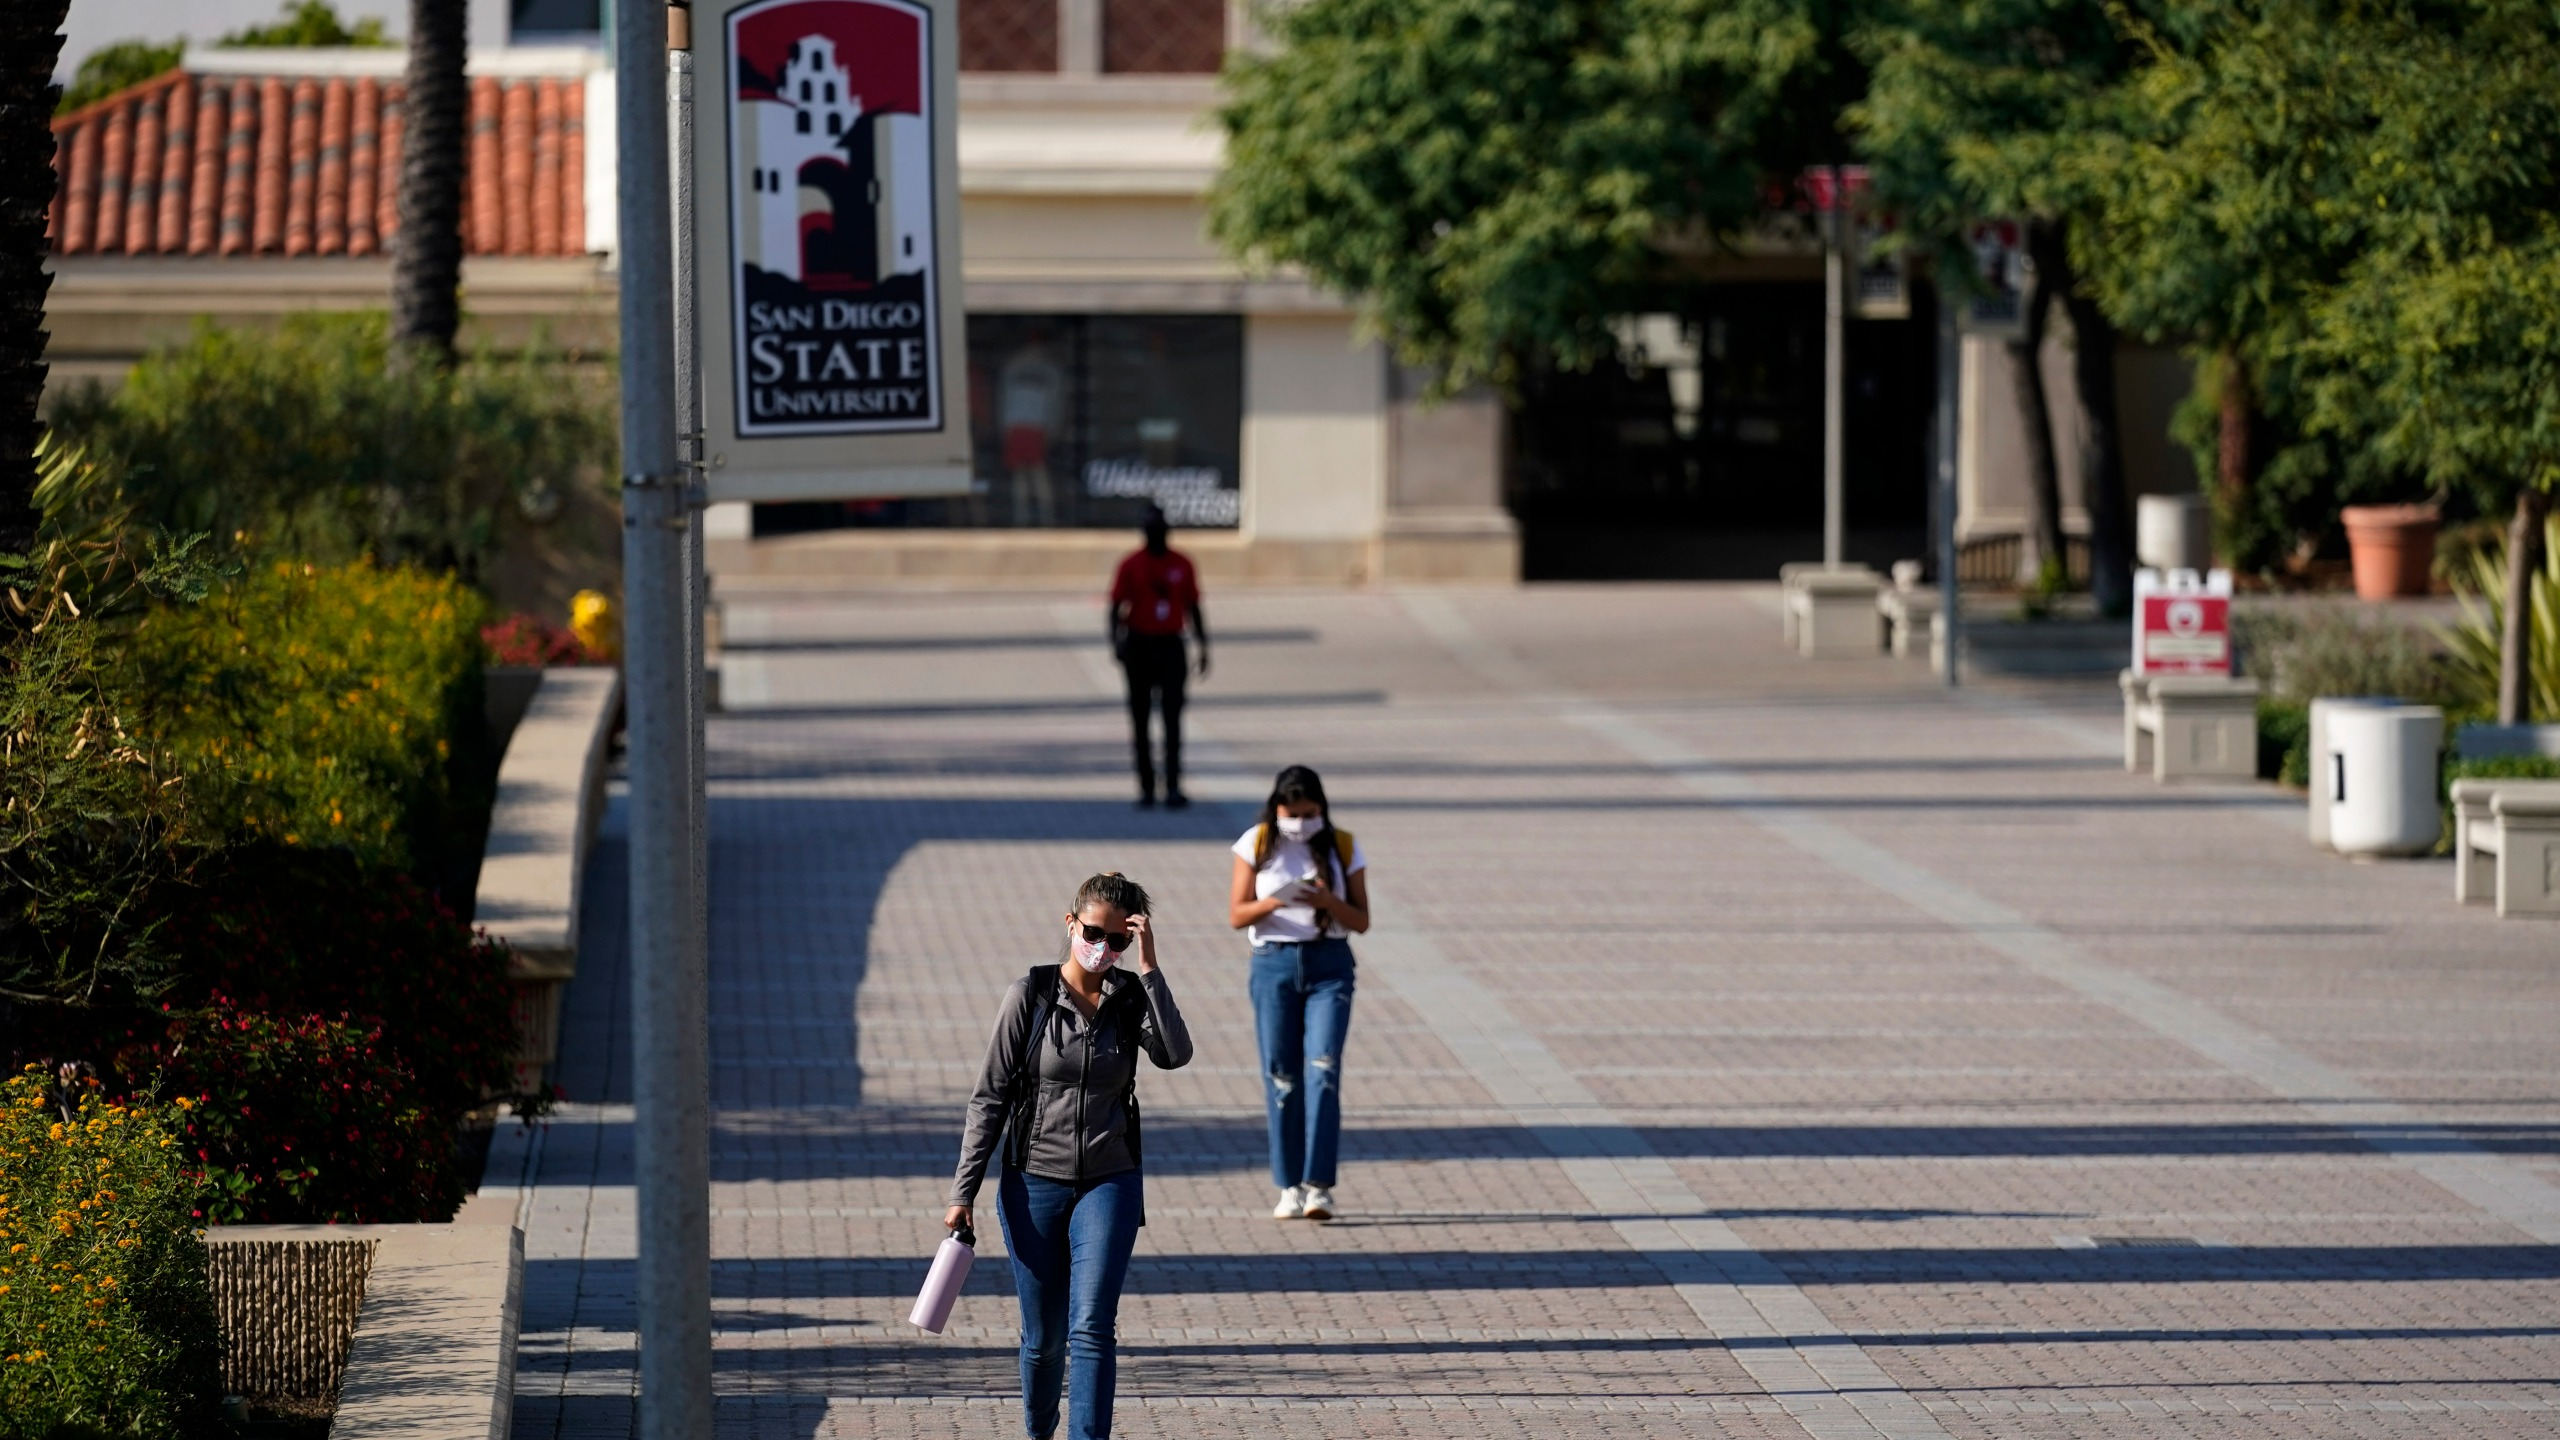 People walk on campus at San Diego State University on Sept. 2, 2020. The university halted in-person classes for a month after dozens of students were infected with the coronavirus. (Gregory Bull/Associated Press)